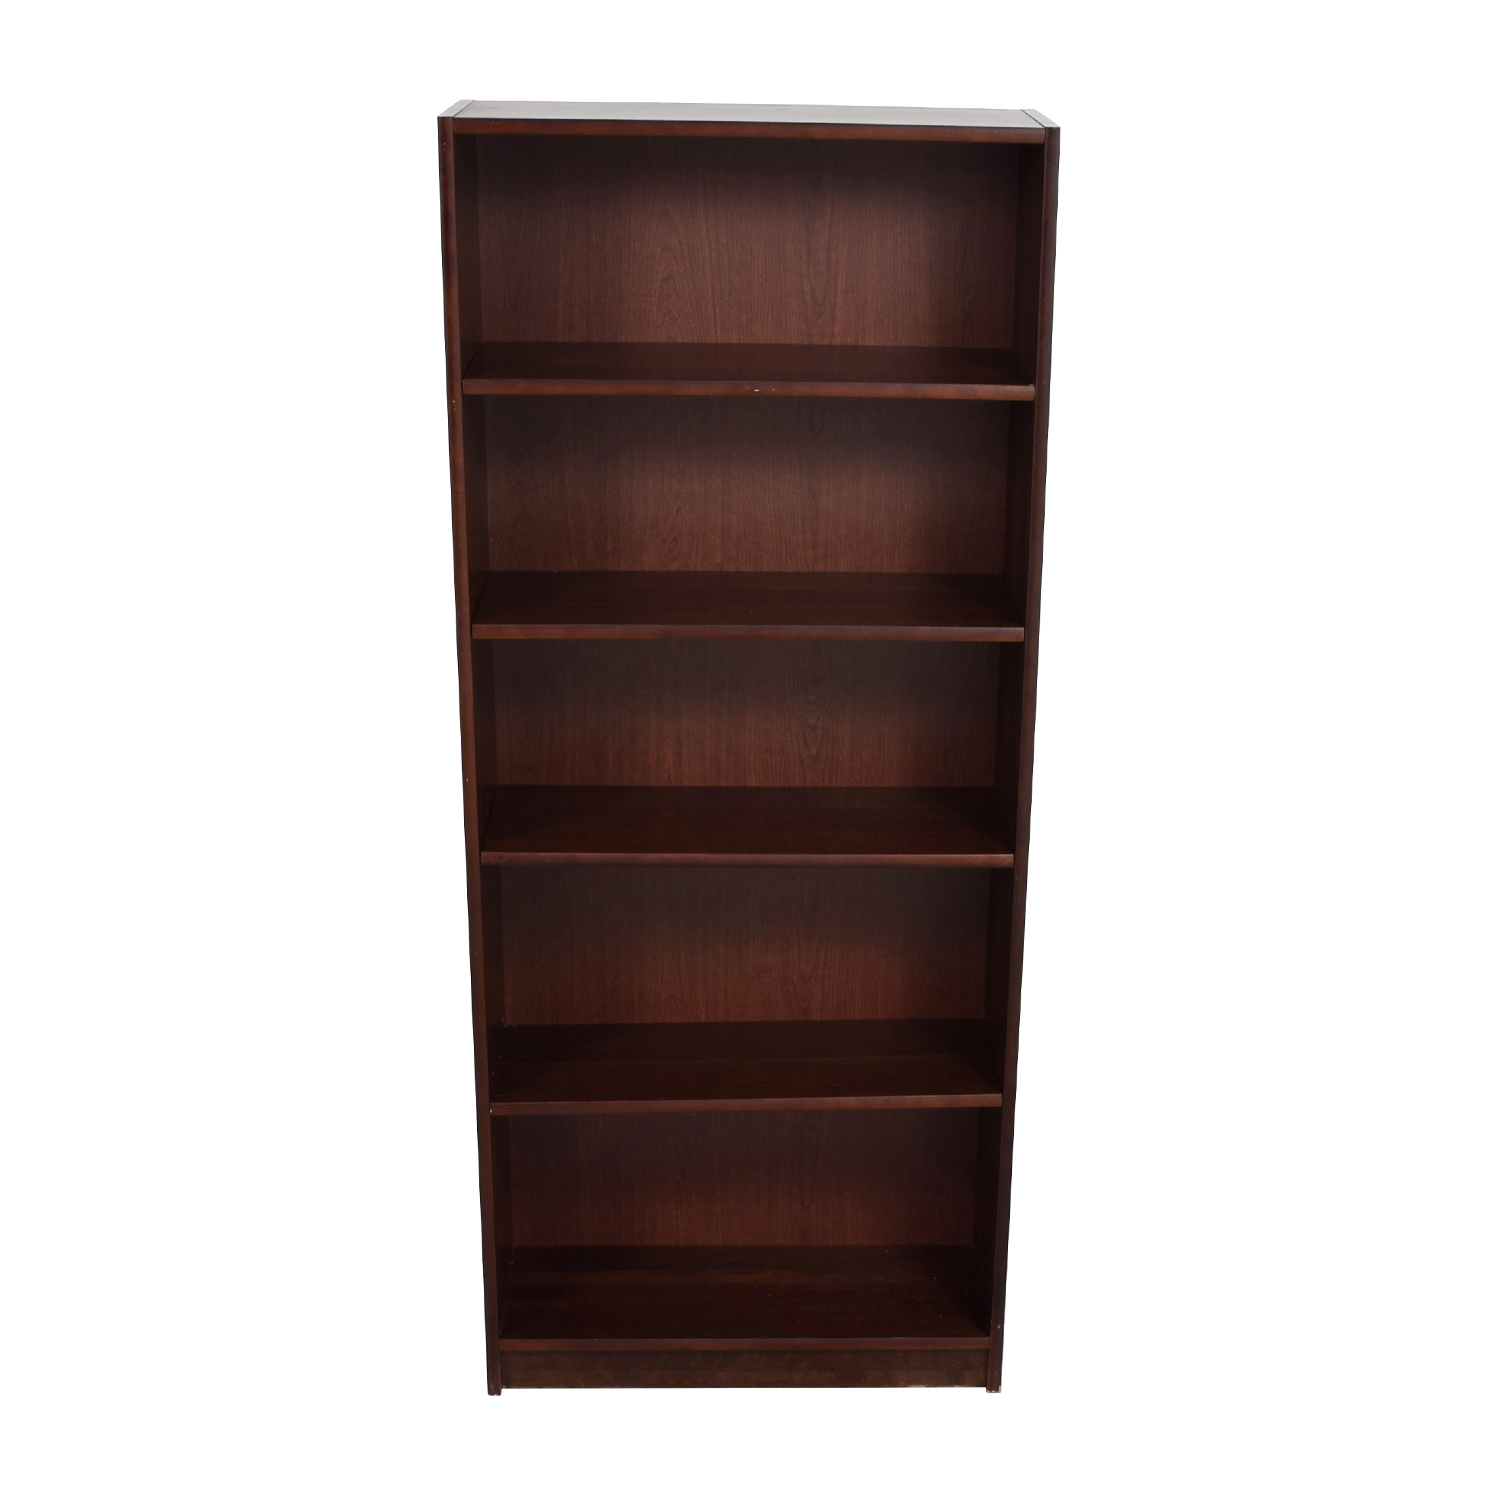 Solid Wood Book Shelf second hand